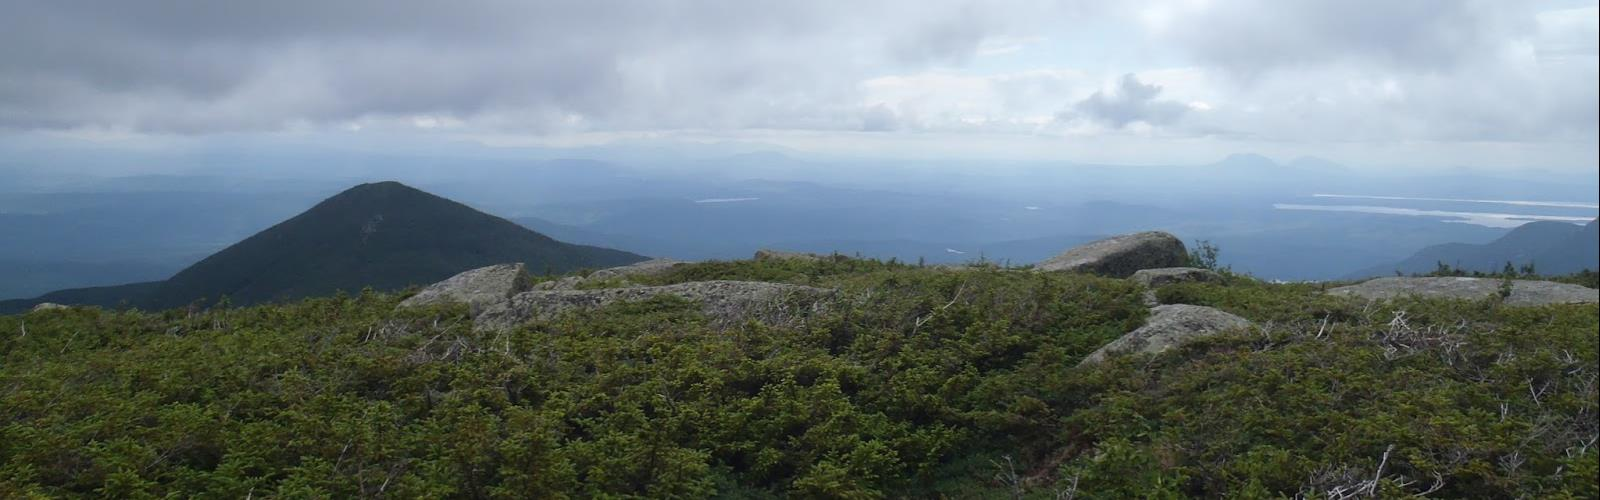 North Brother, Maine - Hiking